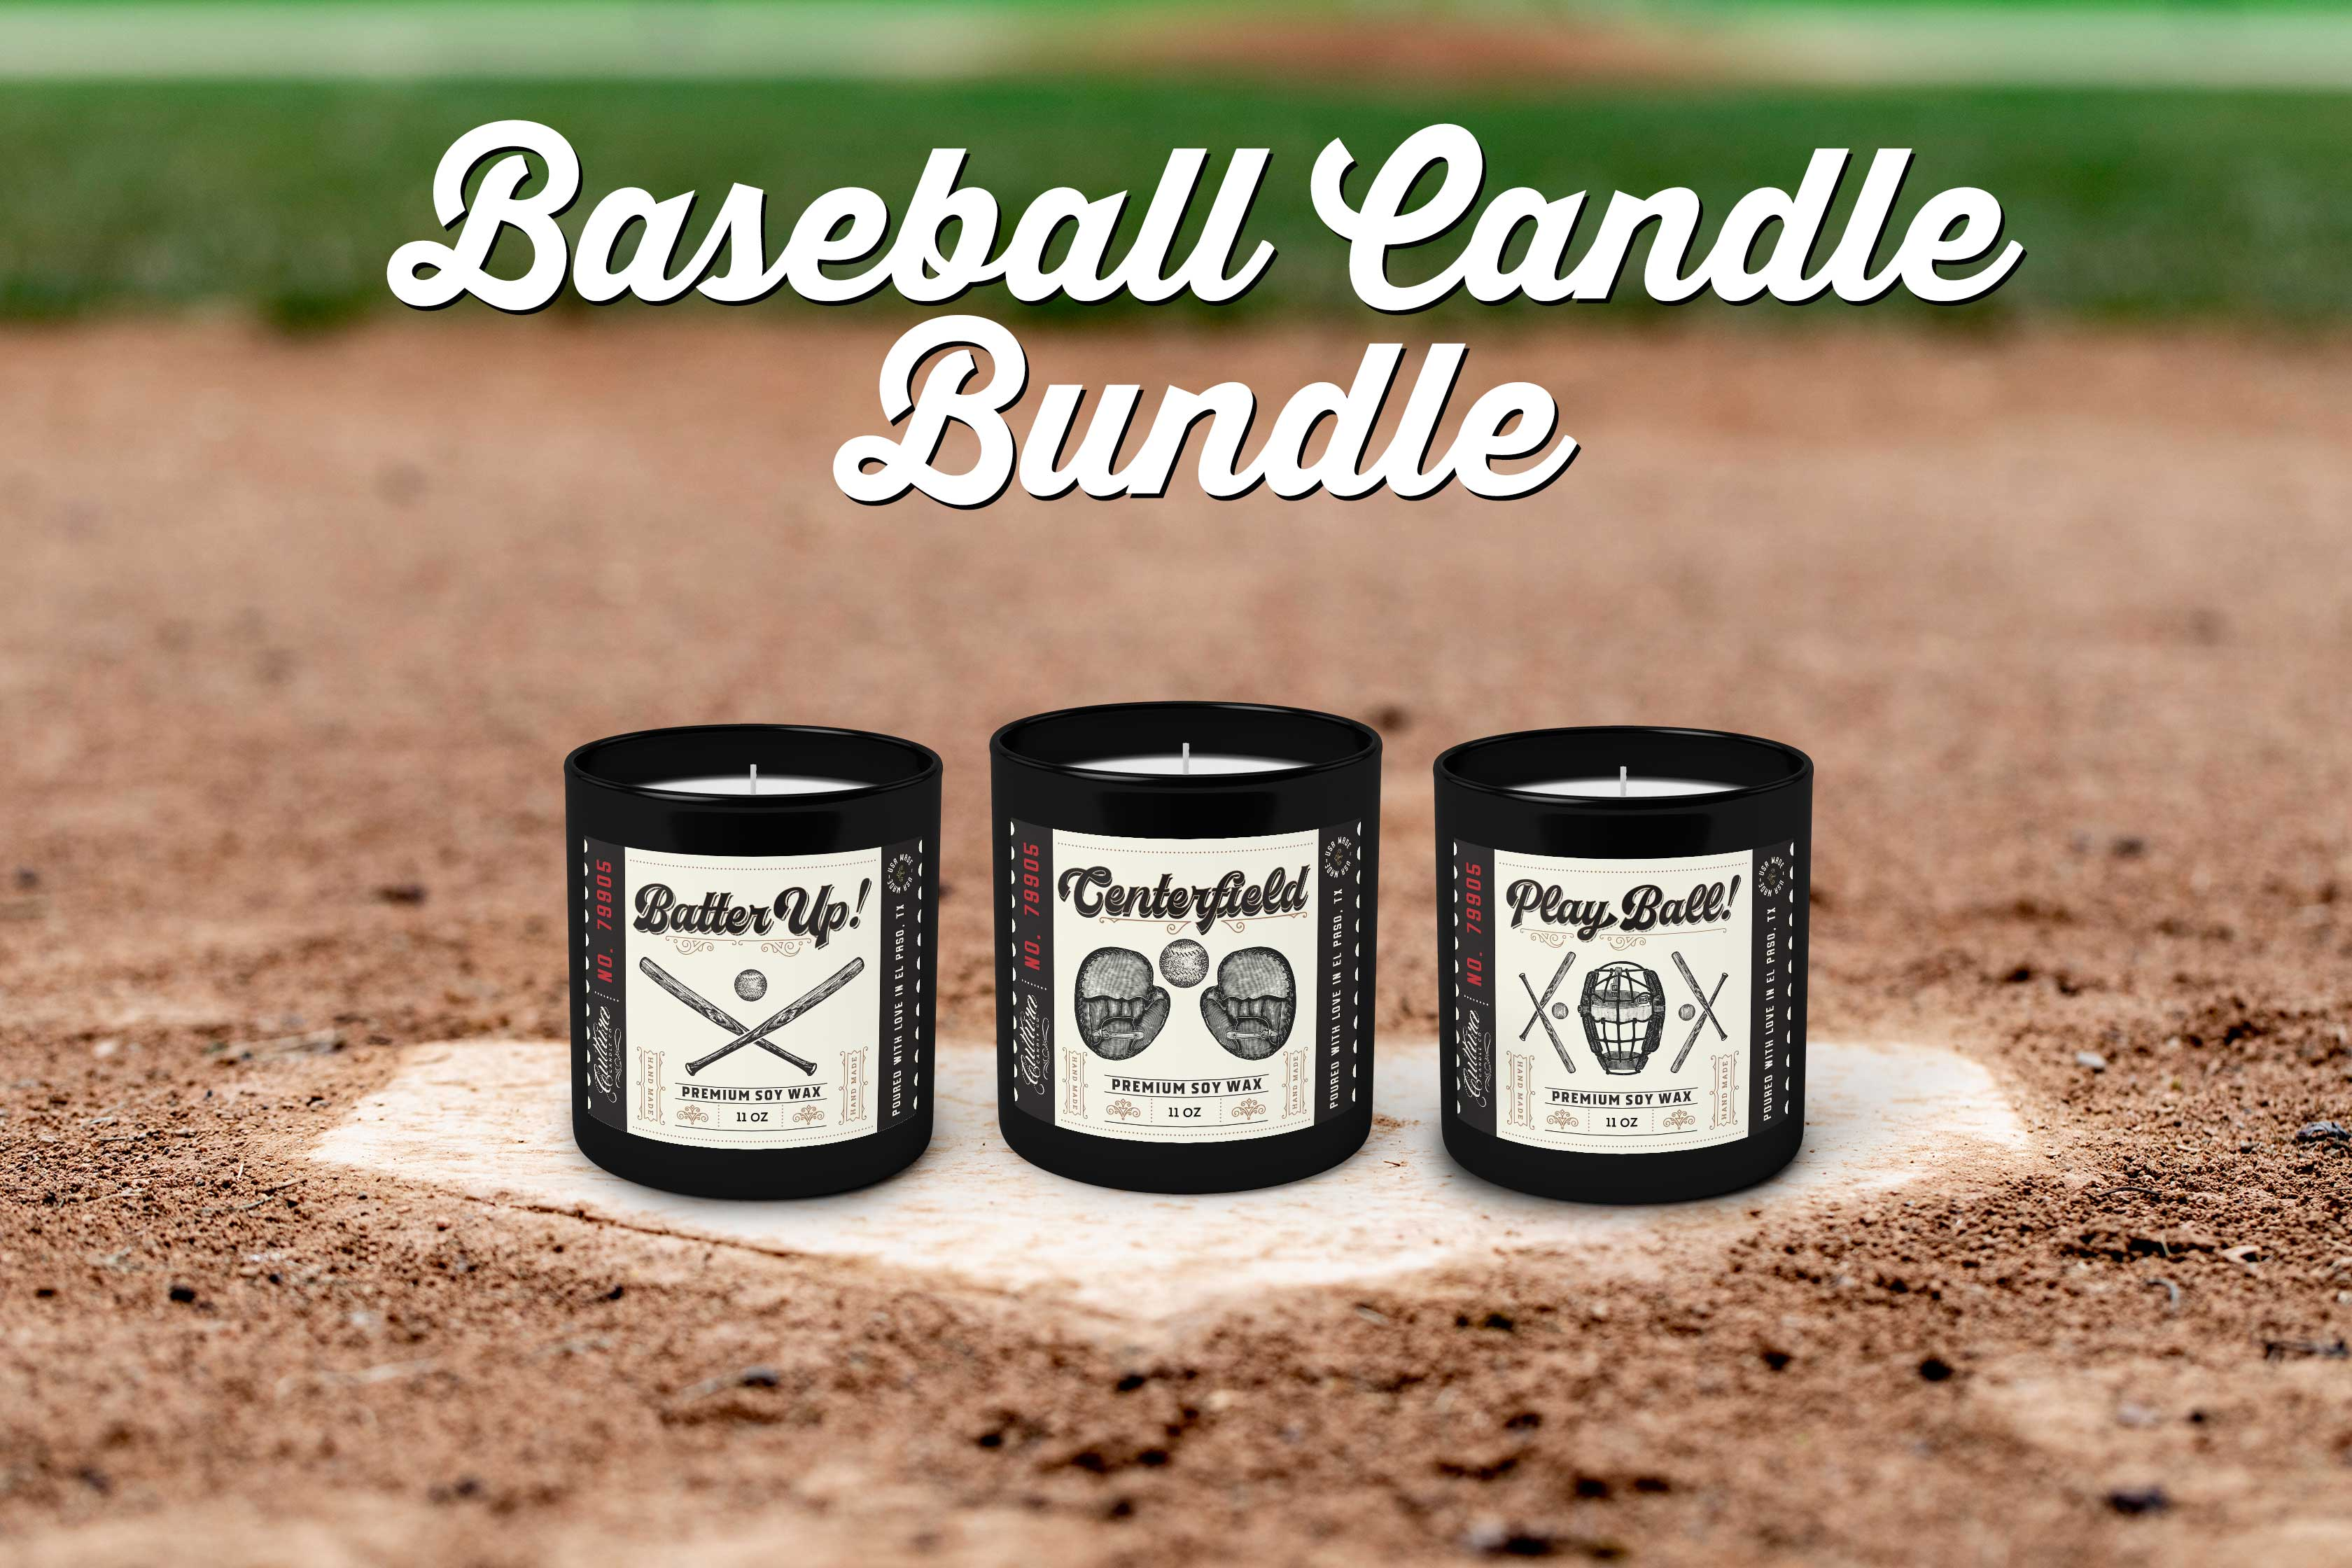 Baseball Candle Bundle